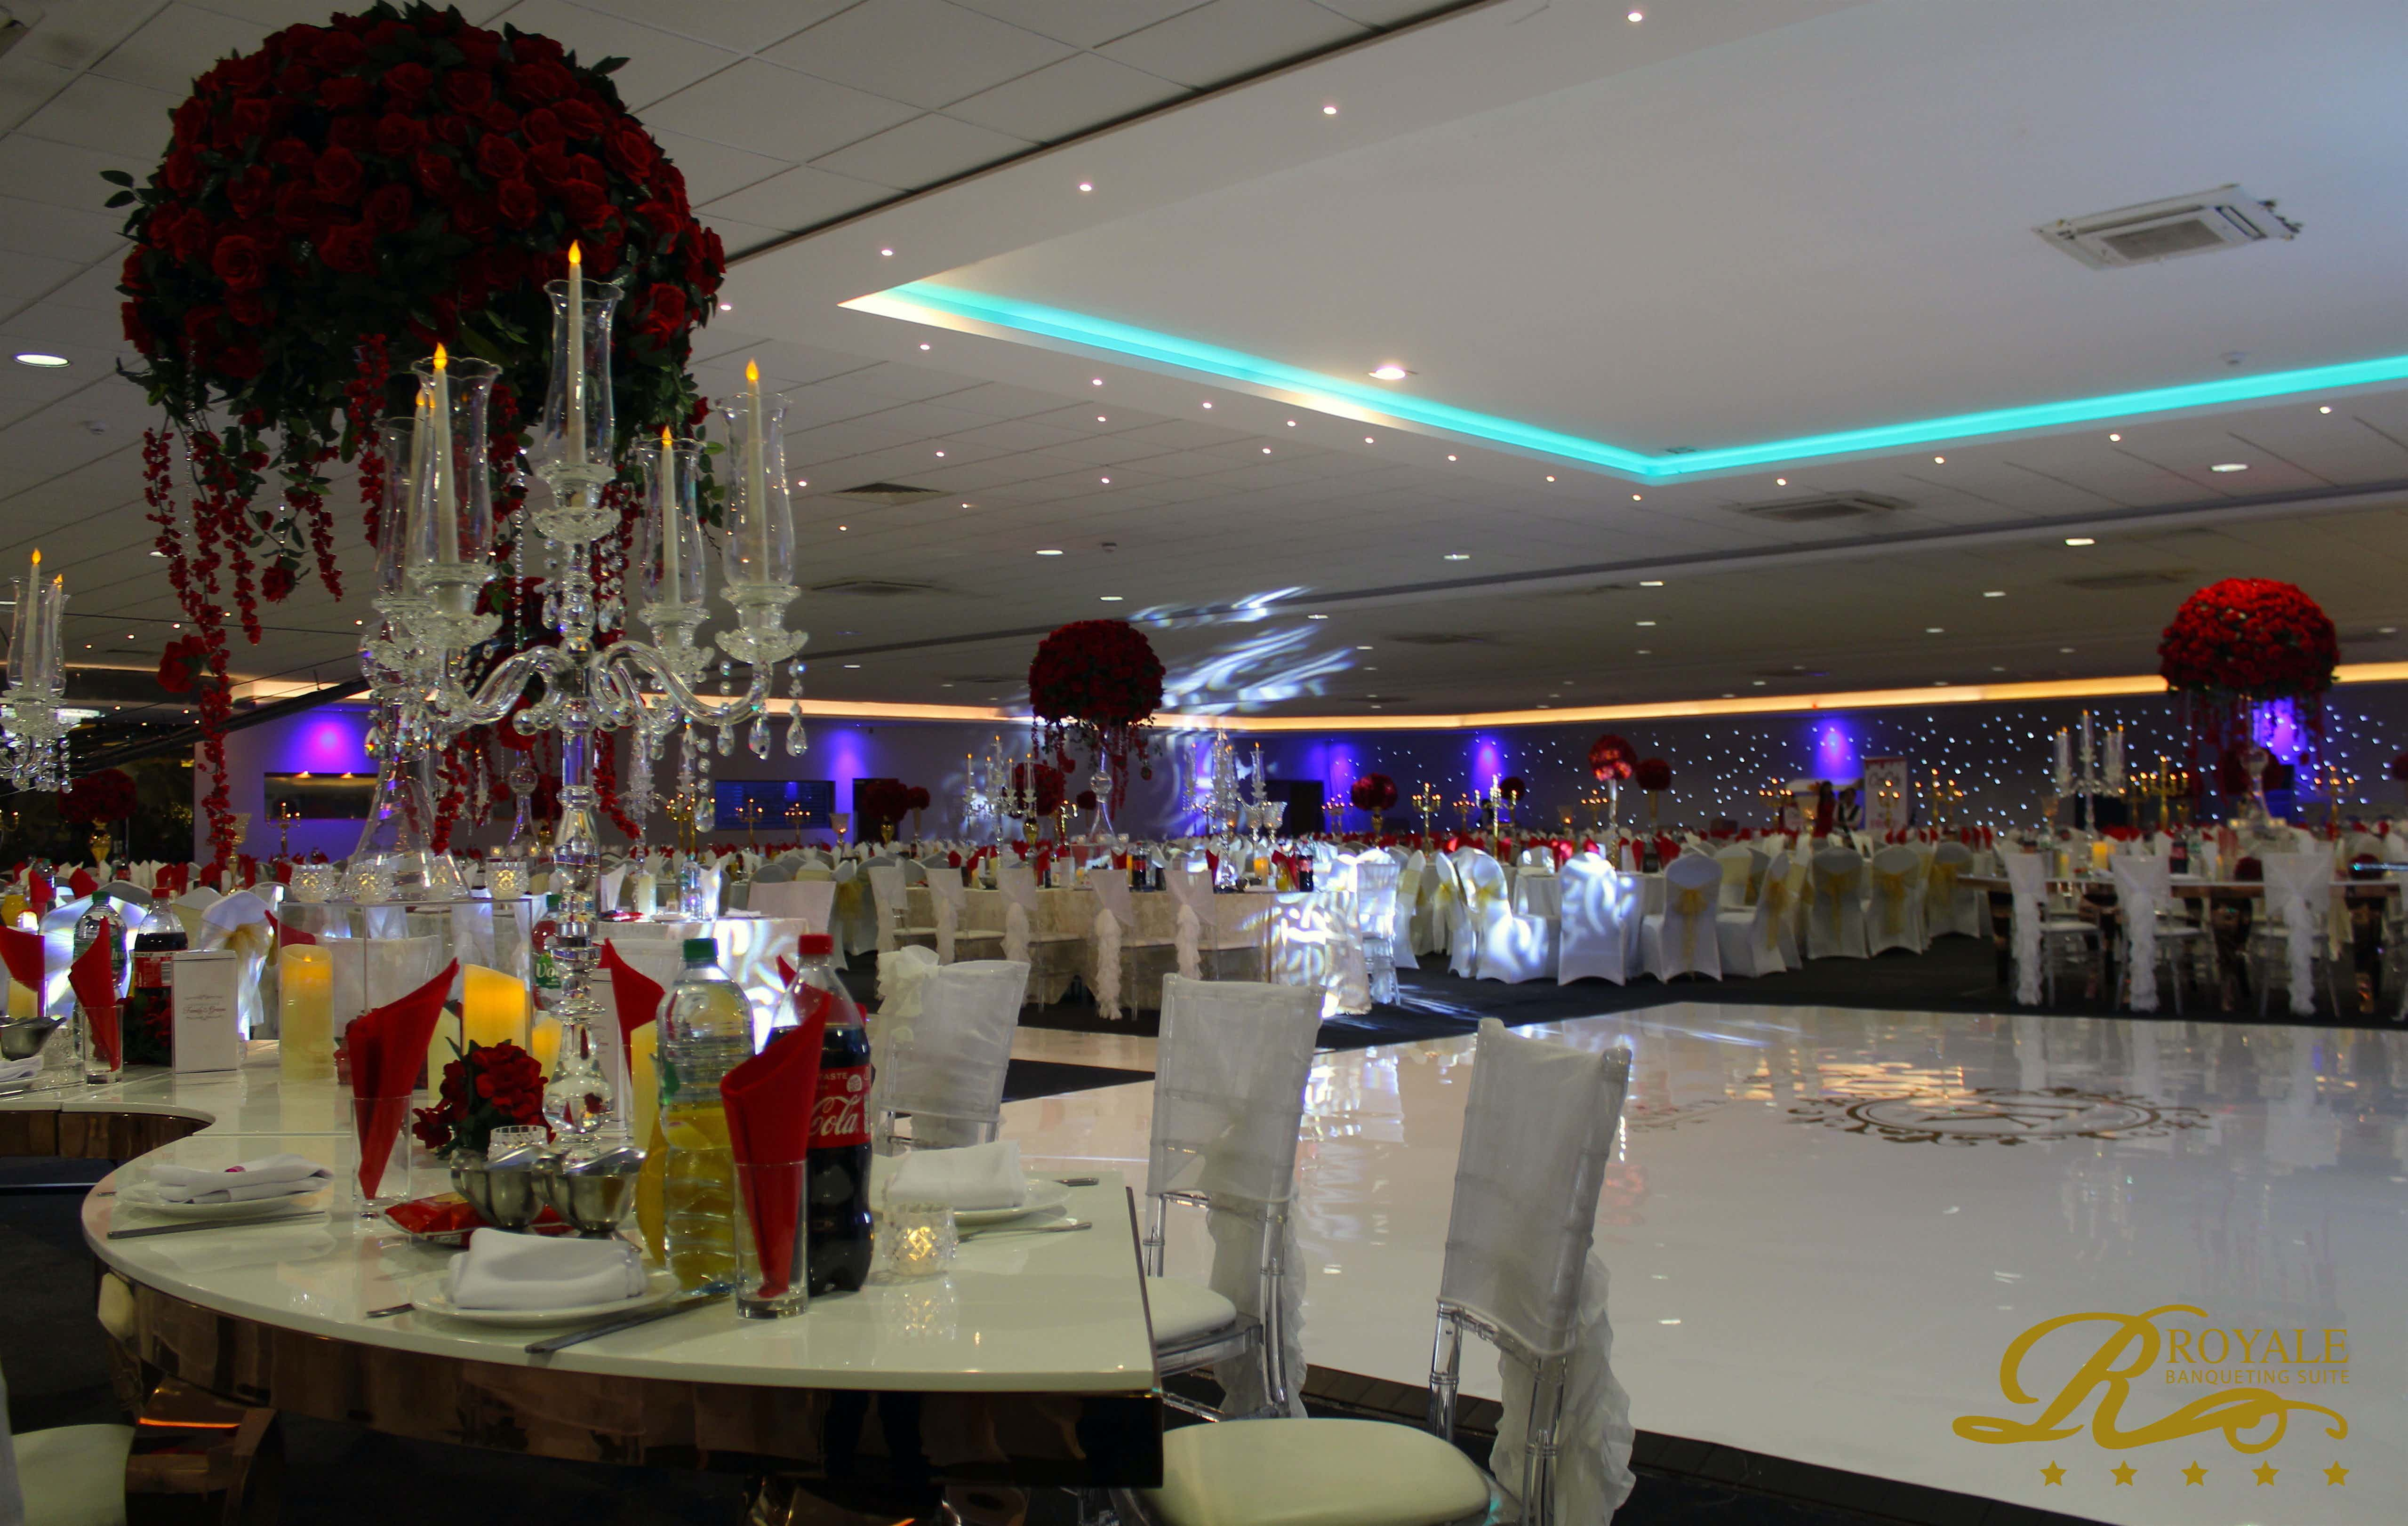 Christmas and New Years at Royale Banqueting Suite, Royale Banqueting Suite Incorporating Royal Corporate Events